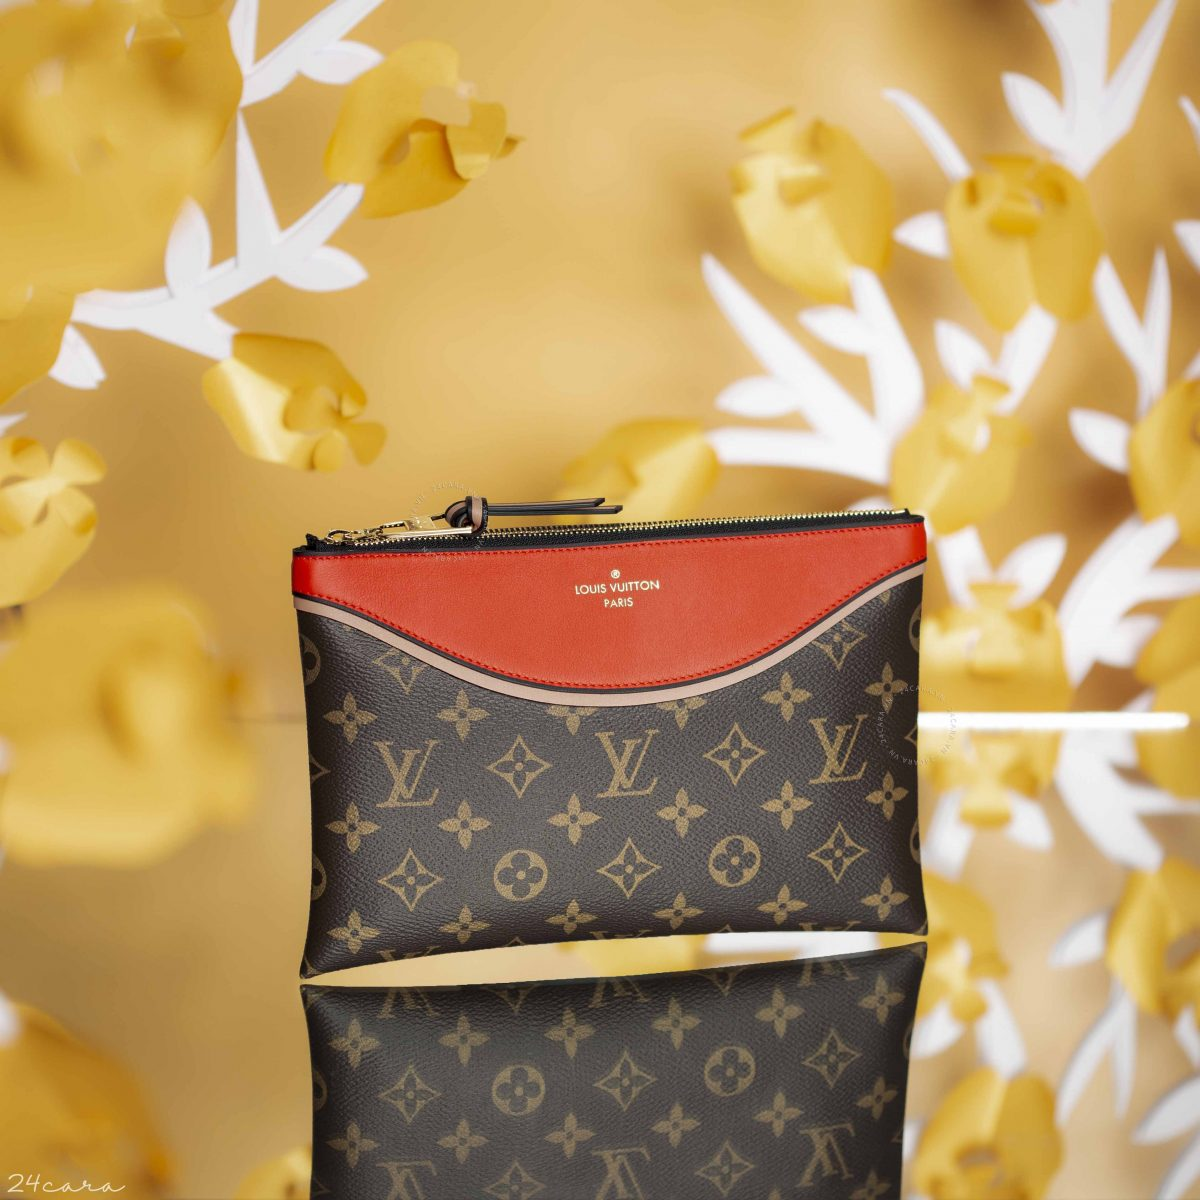 LOUIS VUITTON TUILERIES MONOGRAM POCHETTE